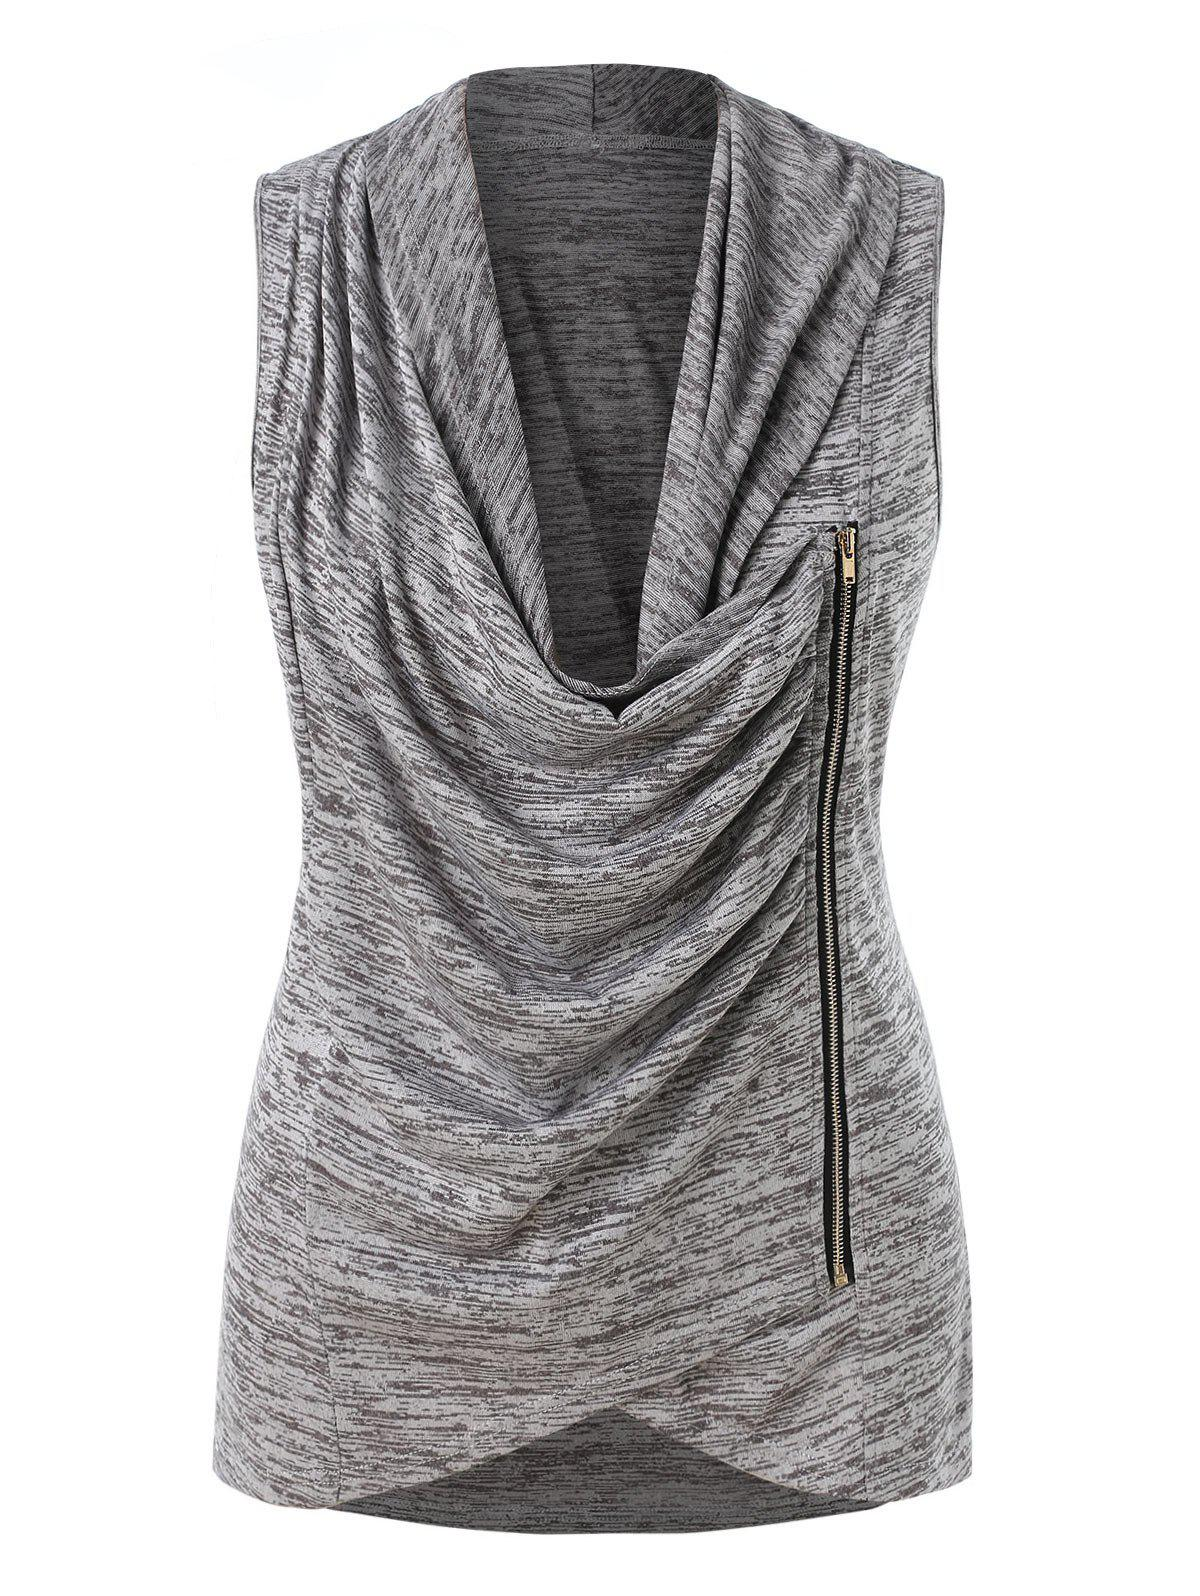 5e66f9800862d 2019 Plus Size Zippered Cowl Neck Tank Top